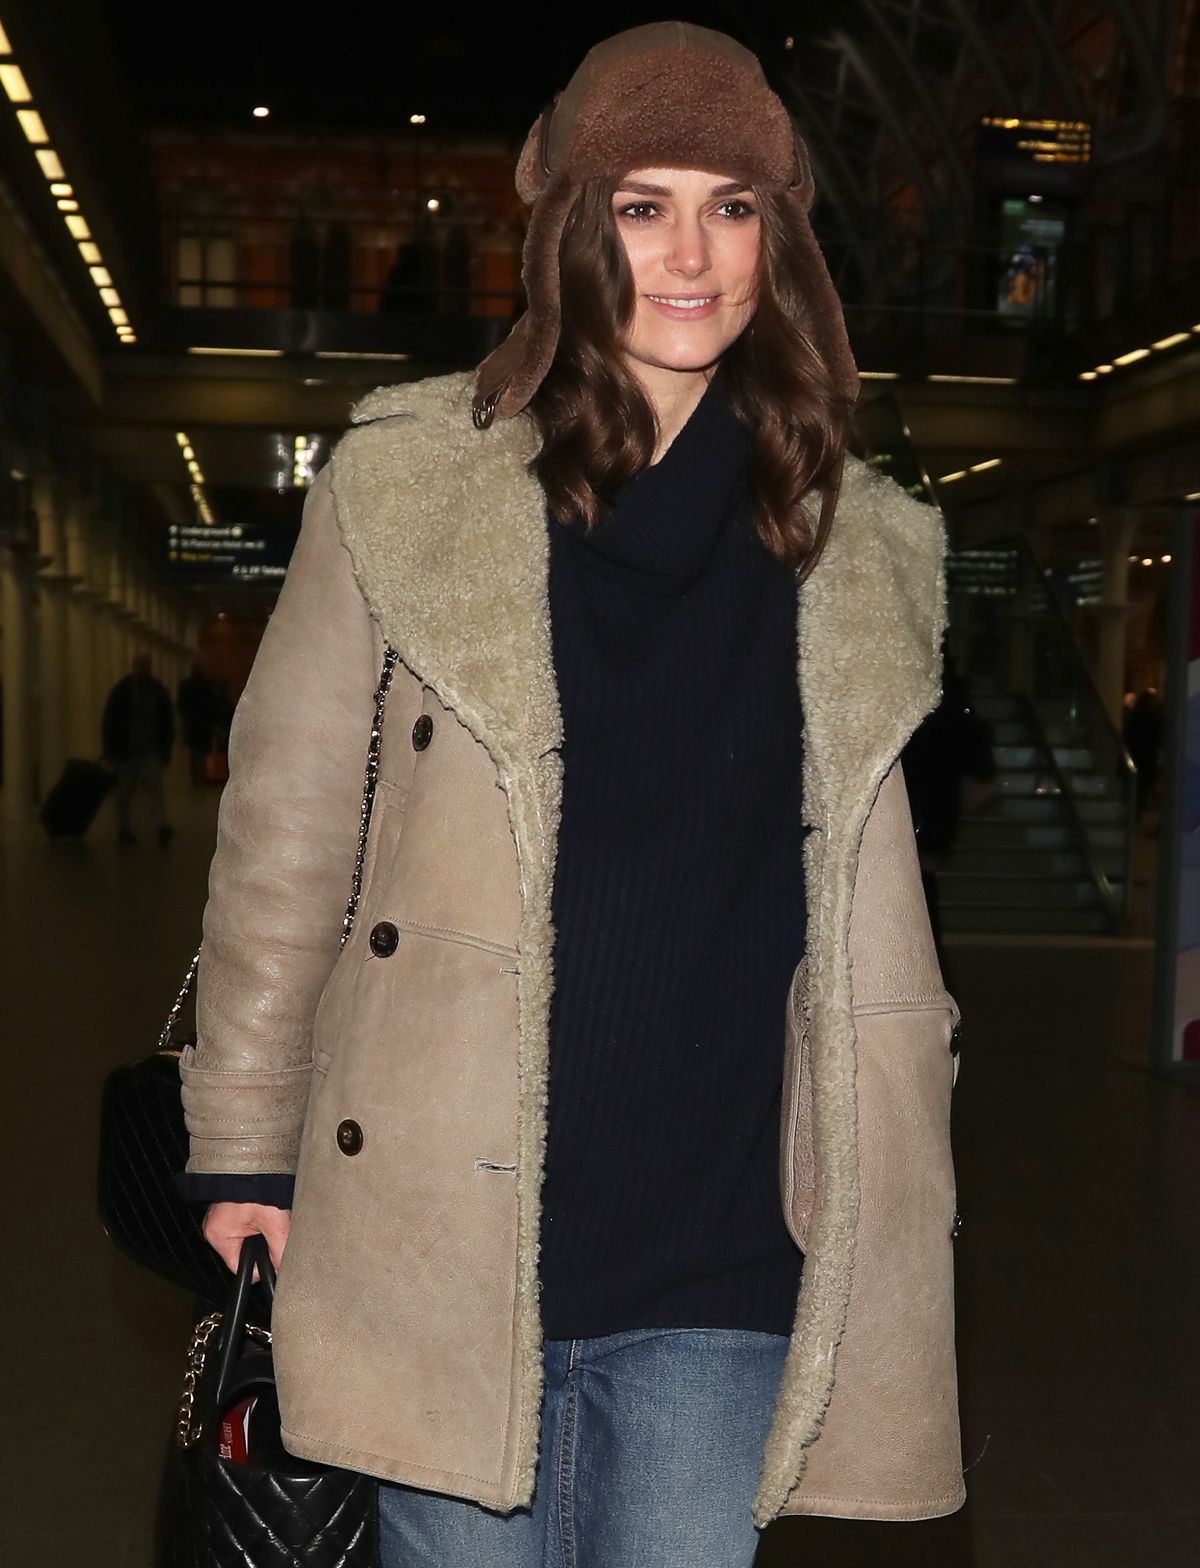 The One Coat Keira Knightley Has Been Wearing for a Decade